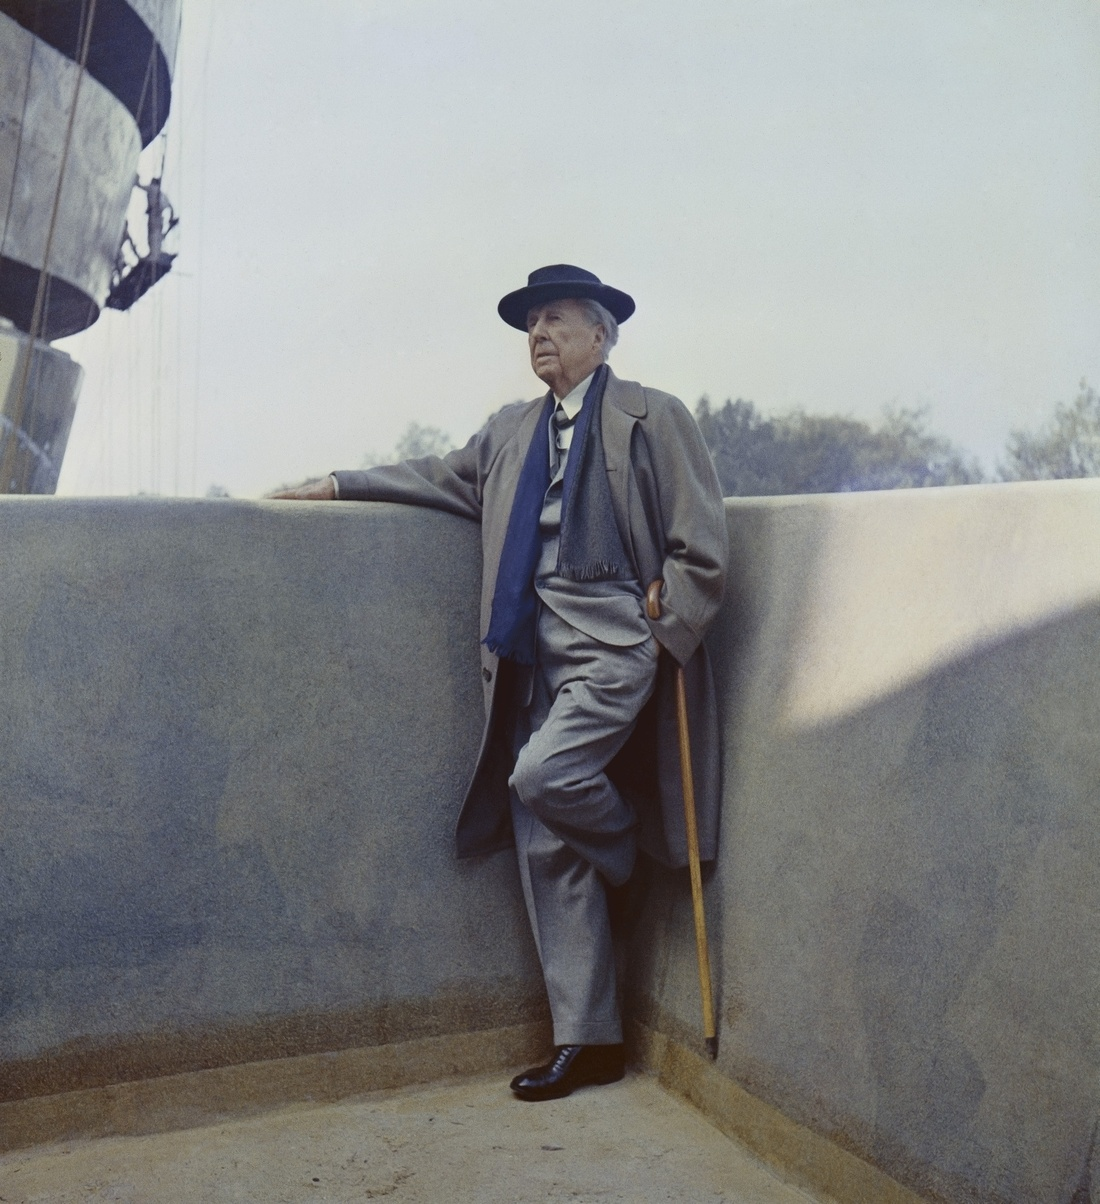 Frank Lloyd Wright on the balcony of the Solomon R. Guggenheim Museum during construction, 1959. Photo by William H. Short. Courtesy of Solomon R. Guggenheim Museum Archives. New York, NY.